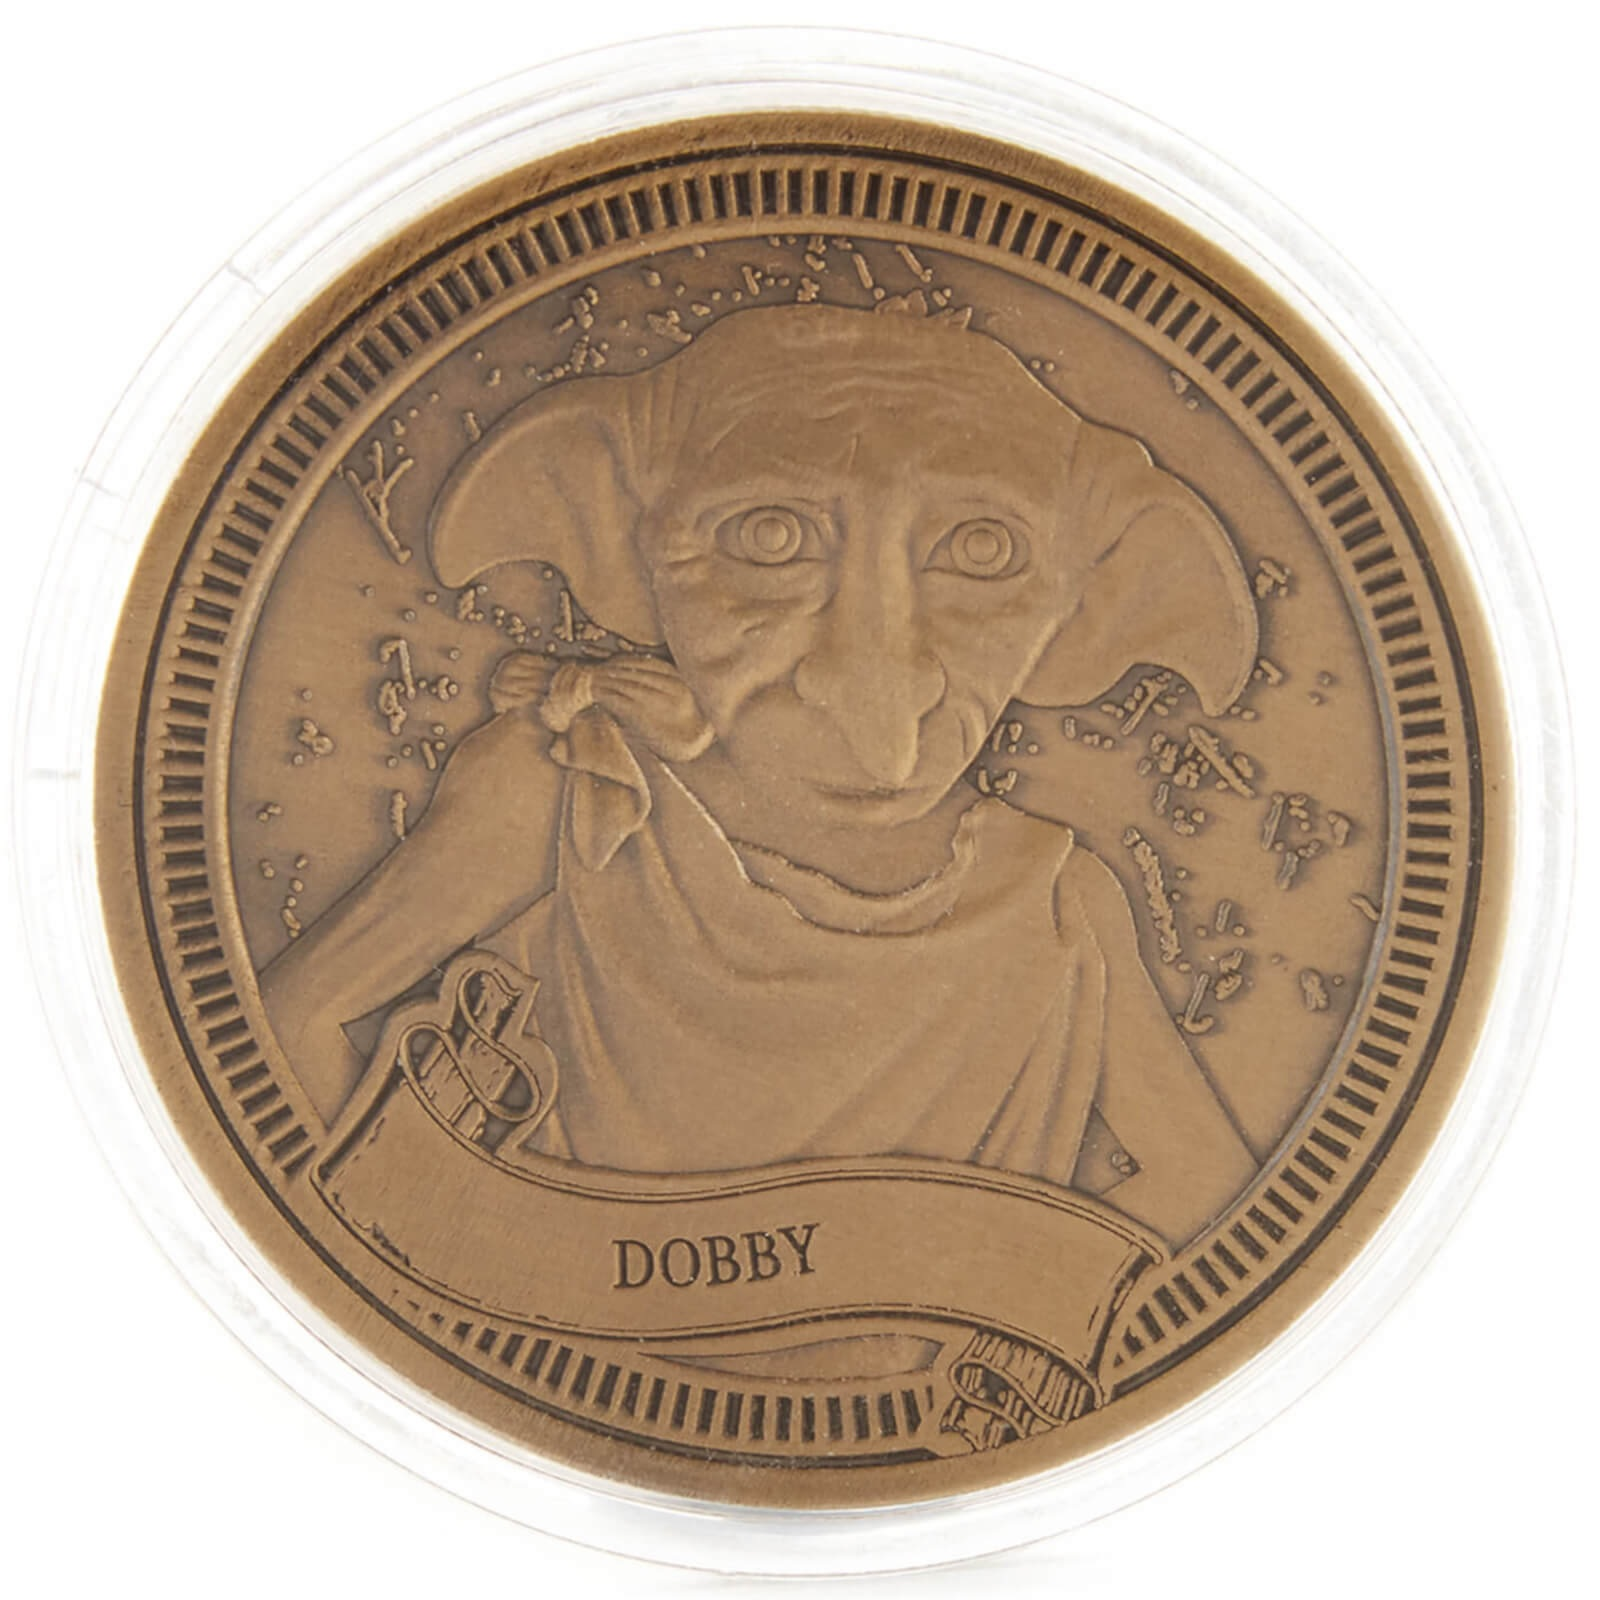 One of the coins included in the Advent calendar features Dobby.